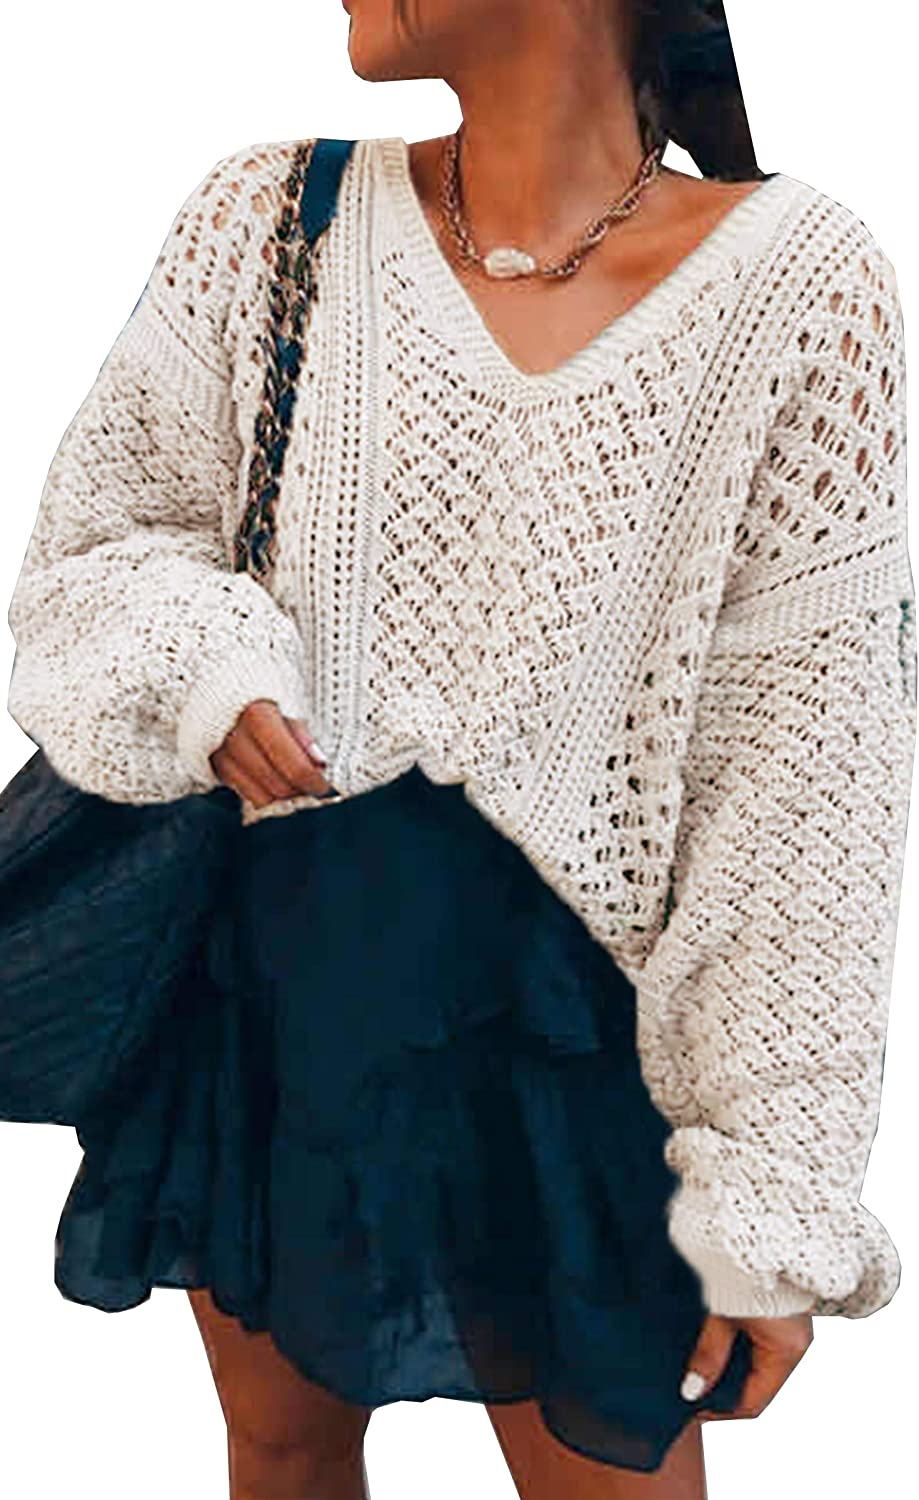 Theenkoln Women's Casual Sweaters Off Shoulder Solid Sexy V-Neck Crochet Knitted Pullover Batwing Sleeve Loose Tops